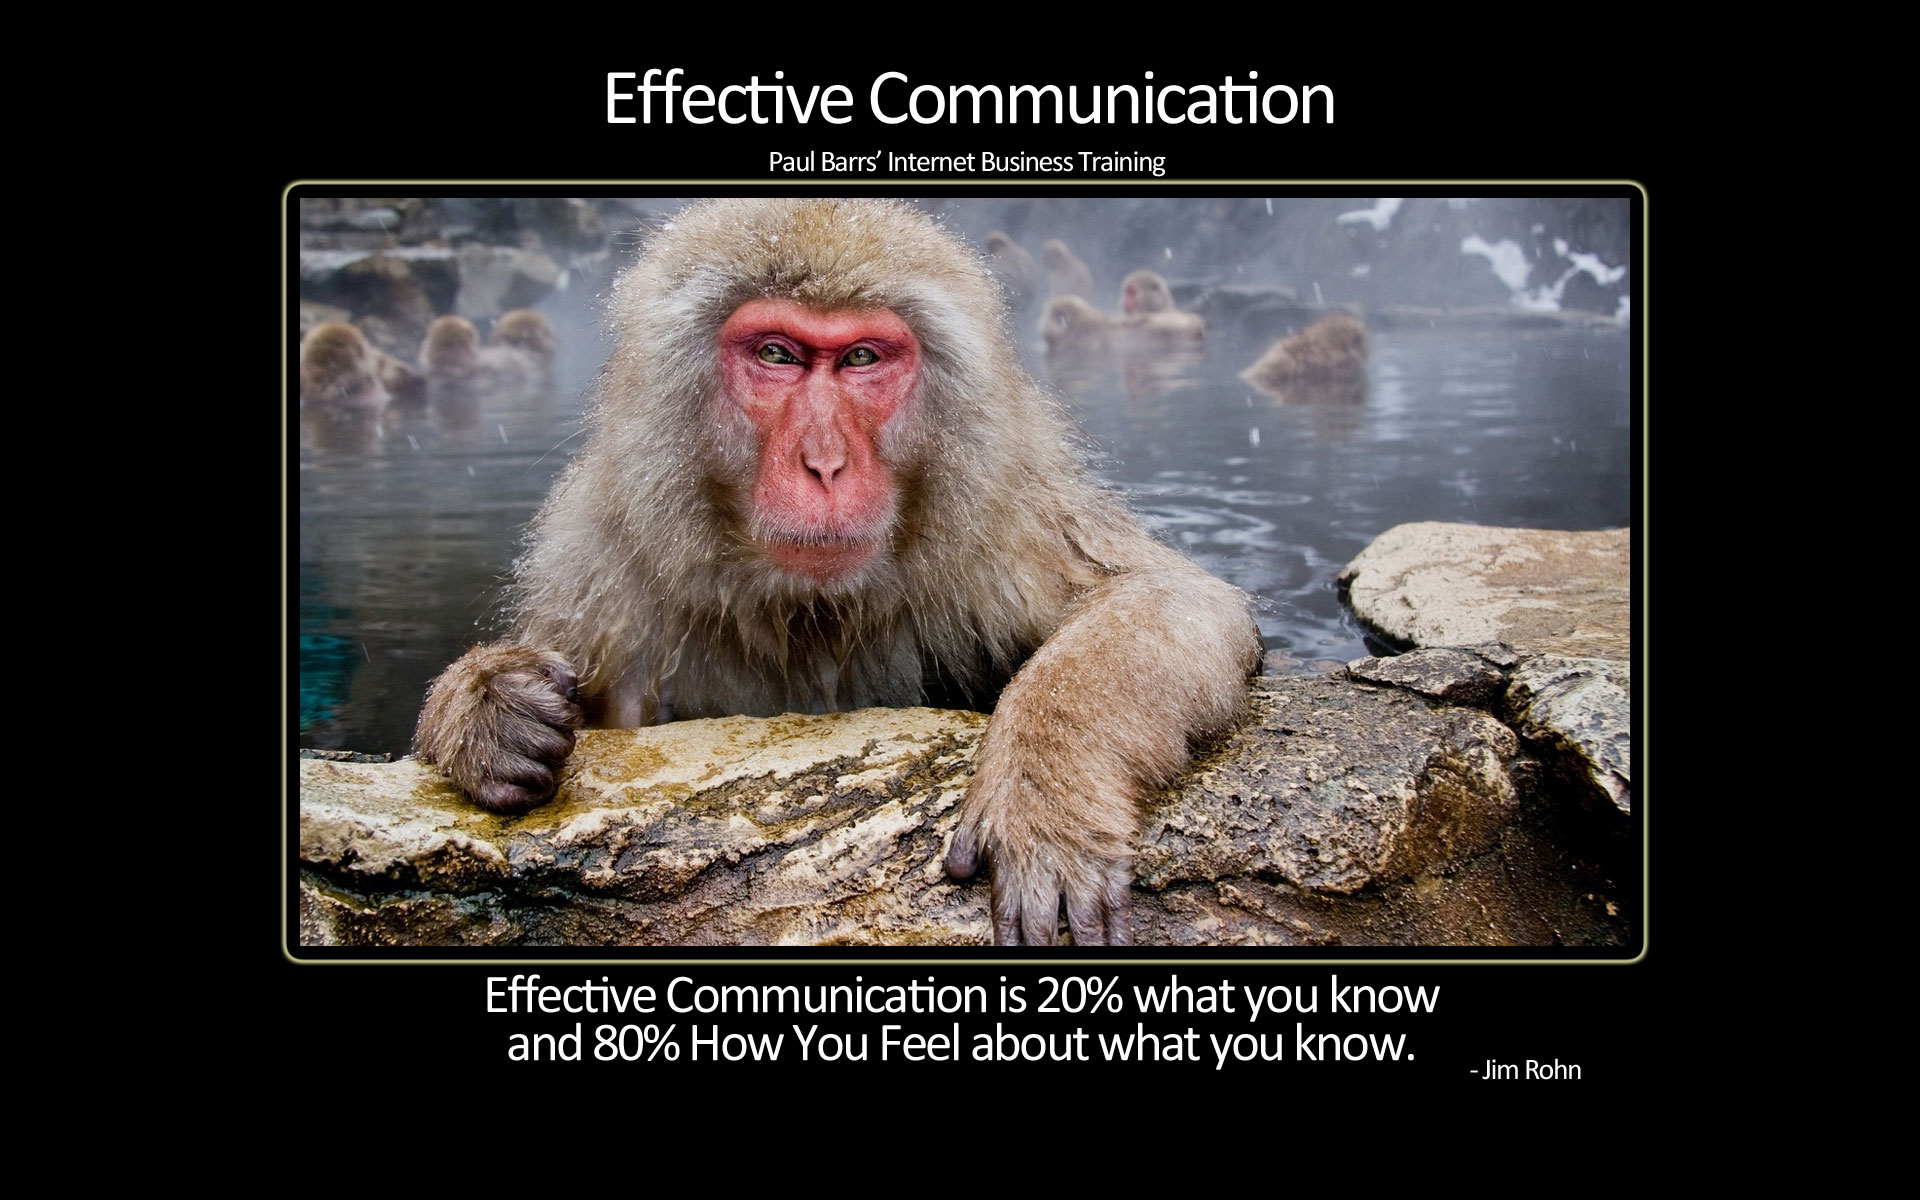 Effective Communication Quotes. QuotesGram